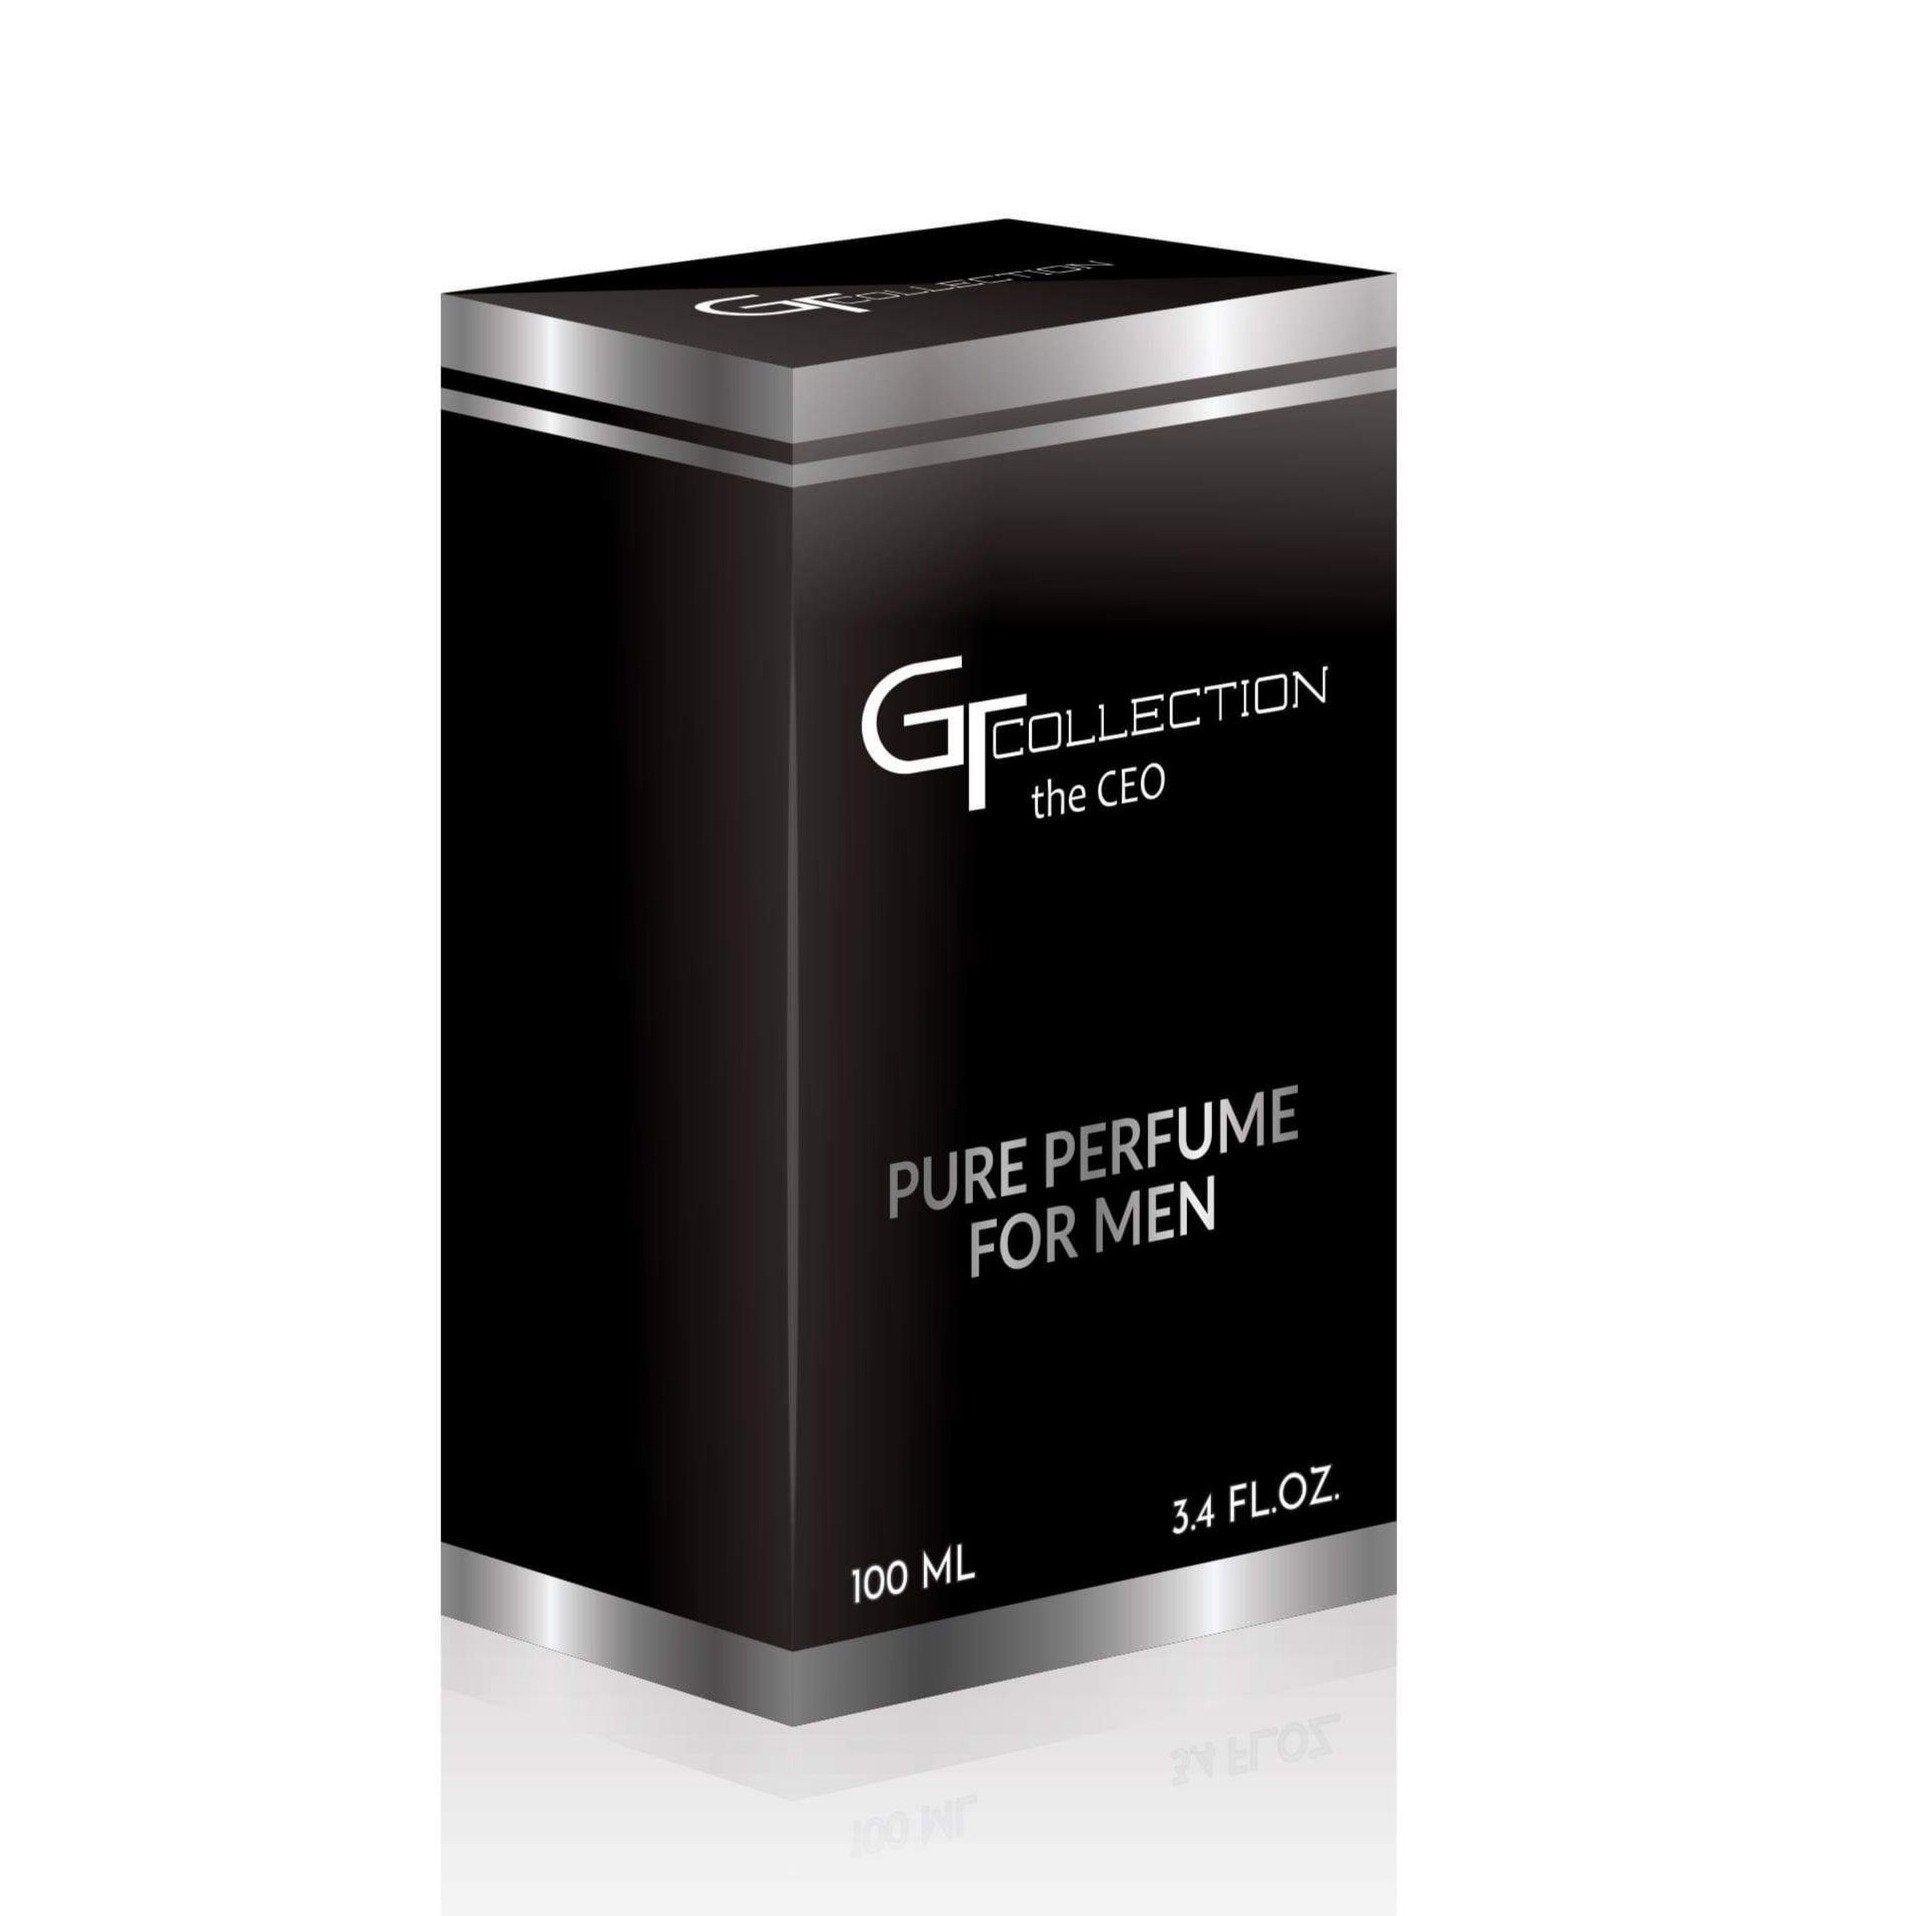 GT Collection The CEO | Pure Perfume For Men